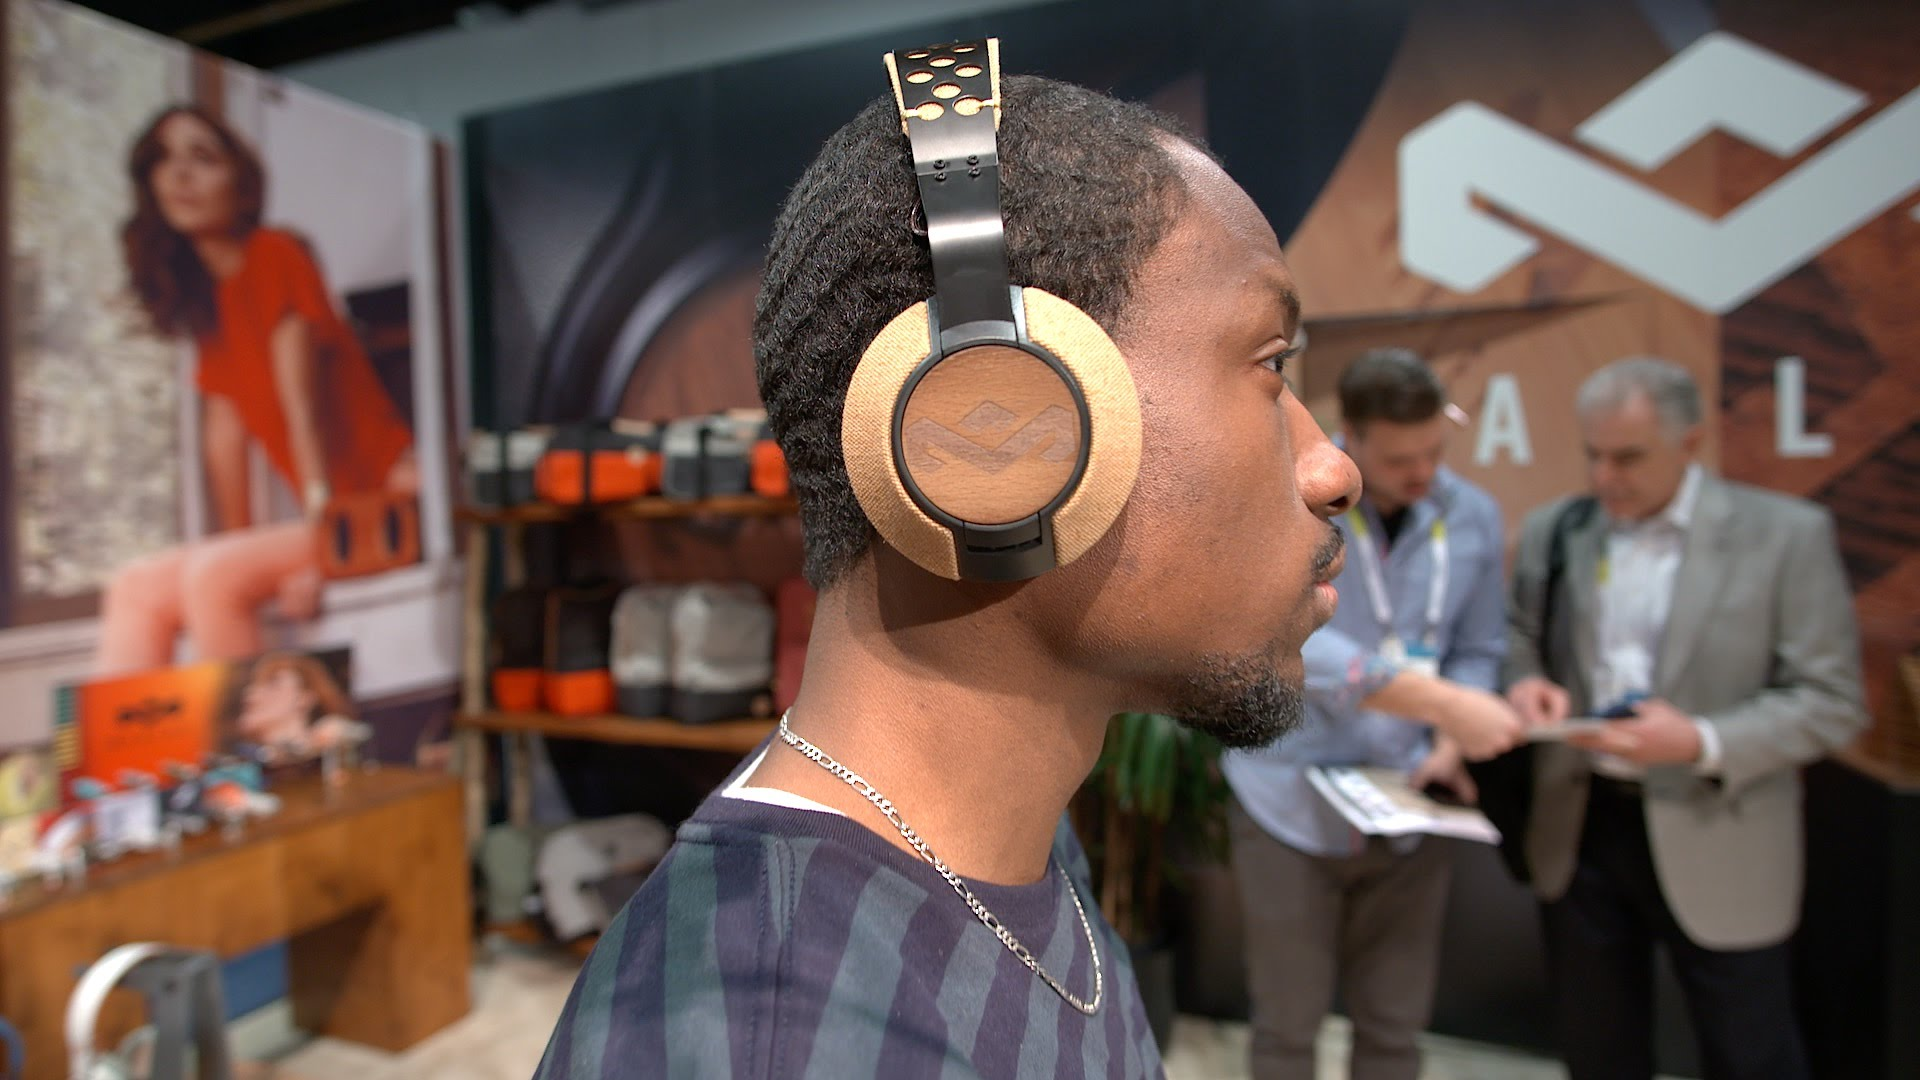 House of Marley's Liberate XLBT headset looks and sounds stunning